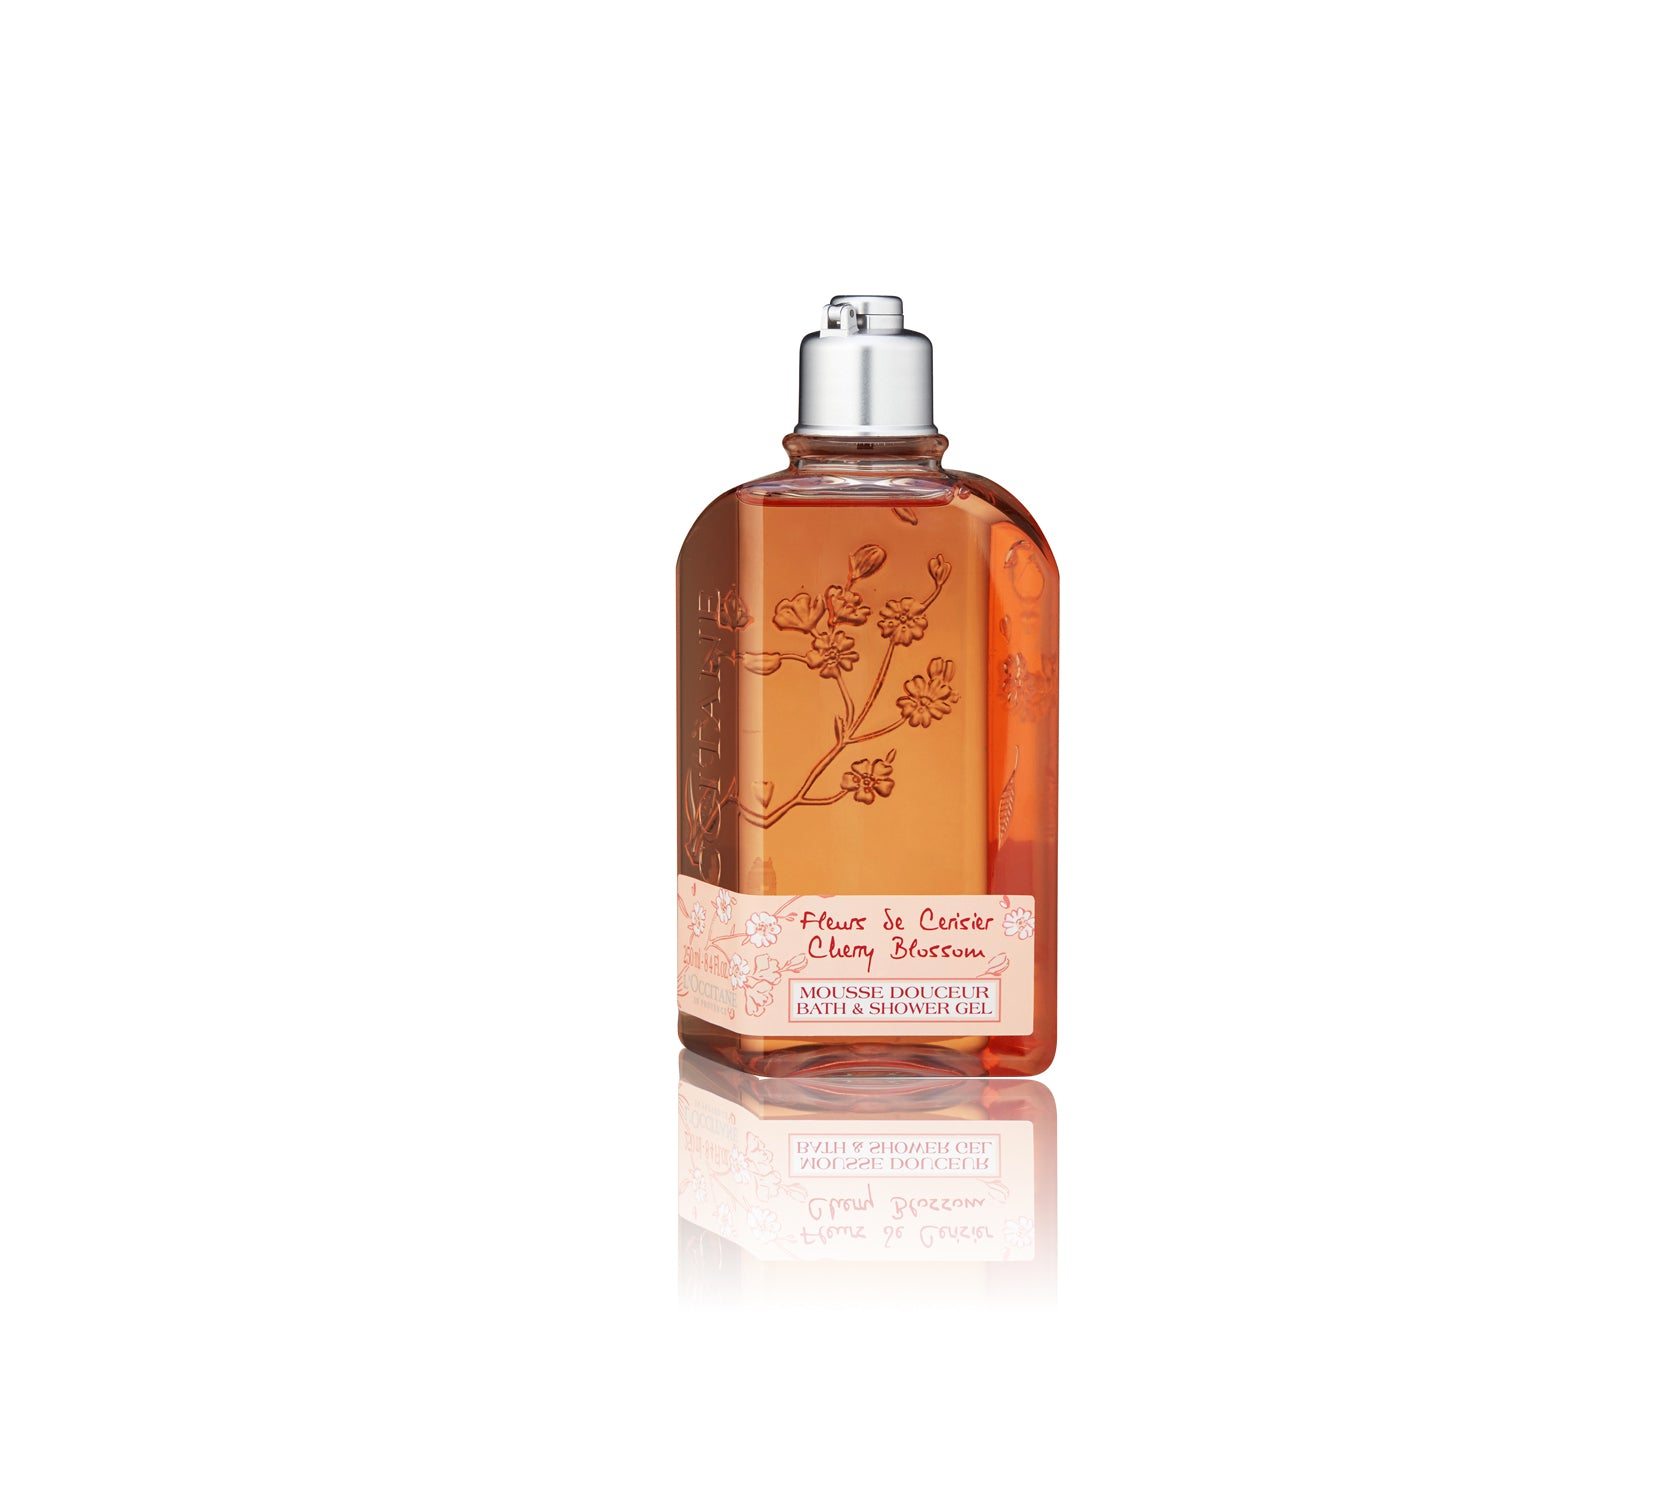 Fleurs De Cerisier Cherry Blossom Mousse Douceur Bath & Shower Gel